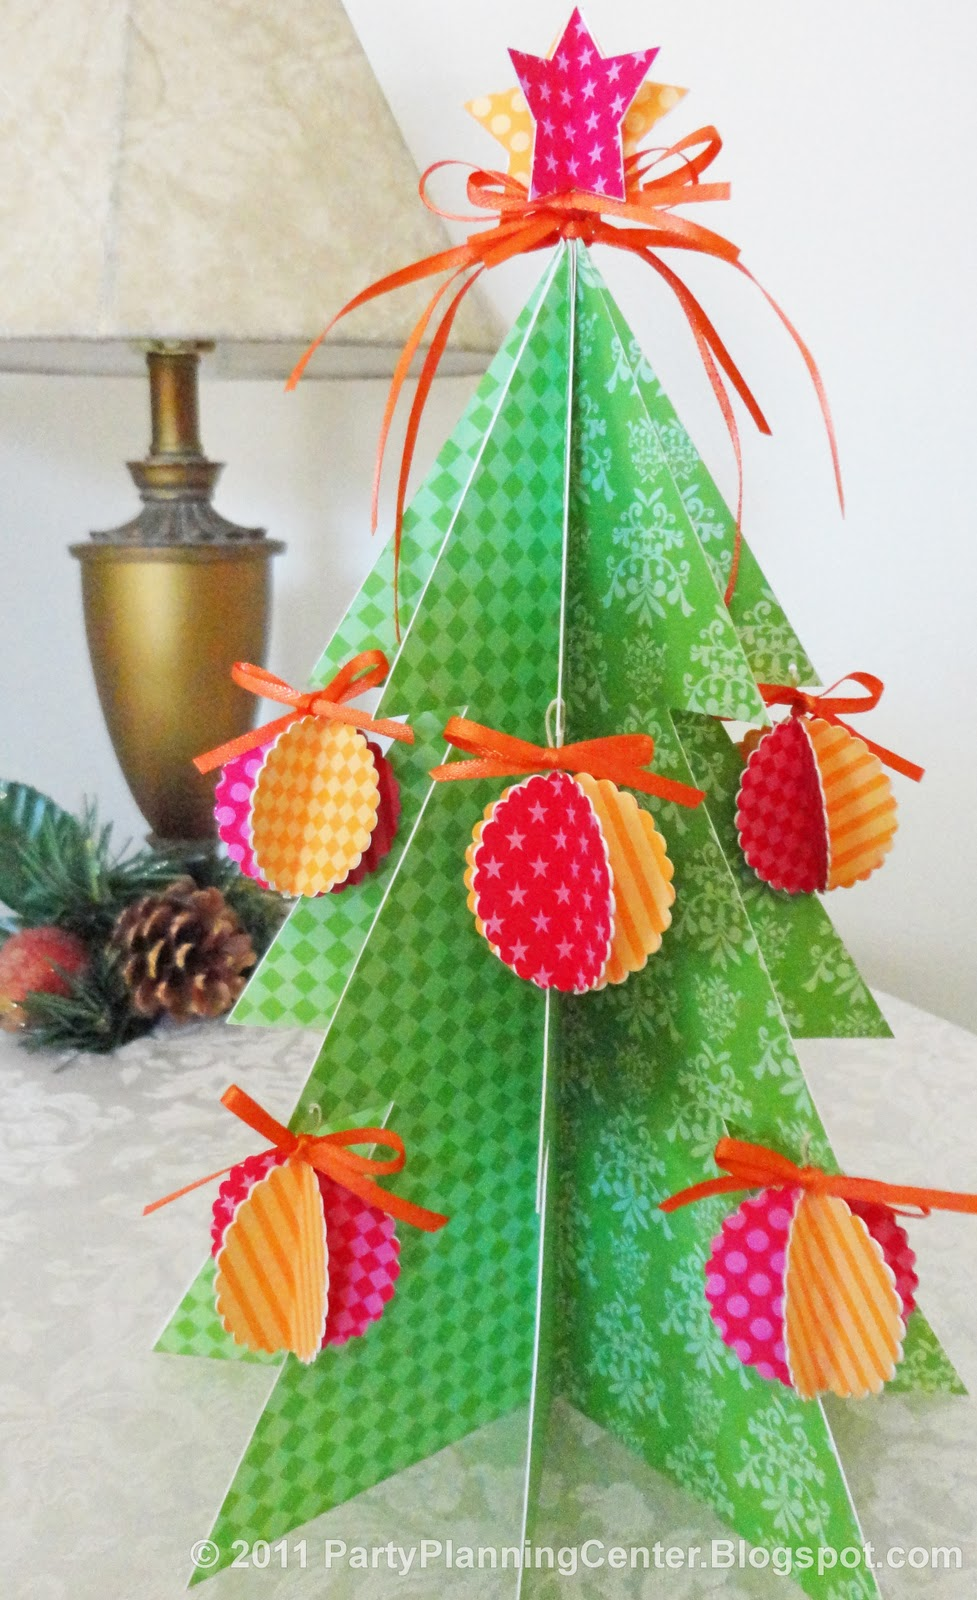 Free Printable Paper Christmas Tree and Ornaments | Party ...